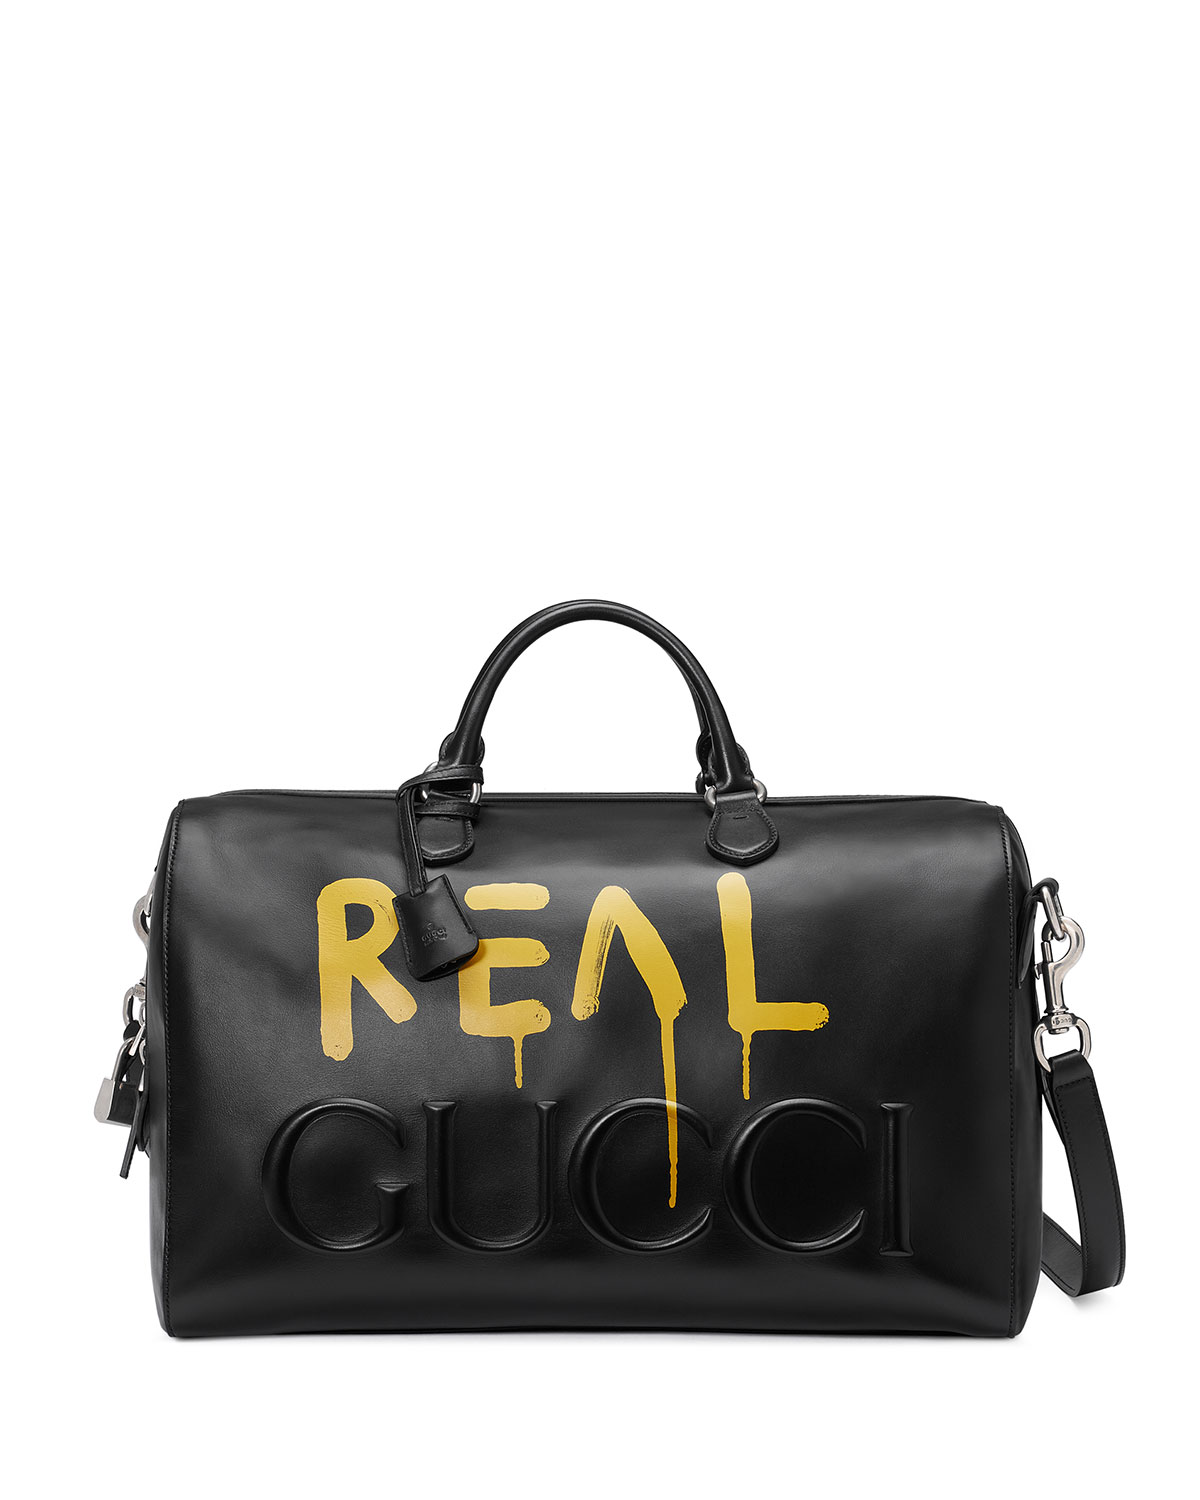 dcb08cd24ce5 Gucci GucciGhost Leather Duffel Bag, Black | Neiman Marcus